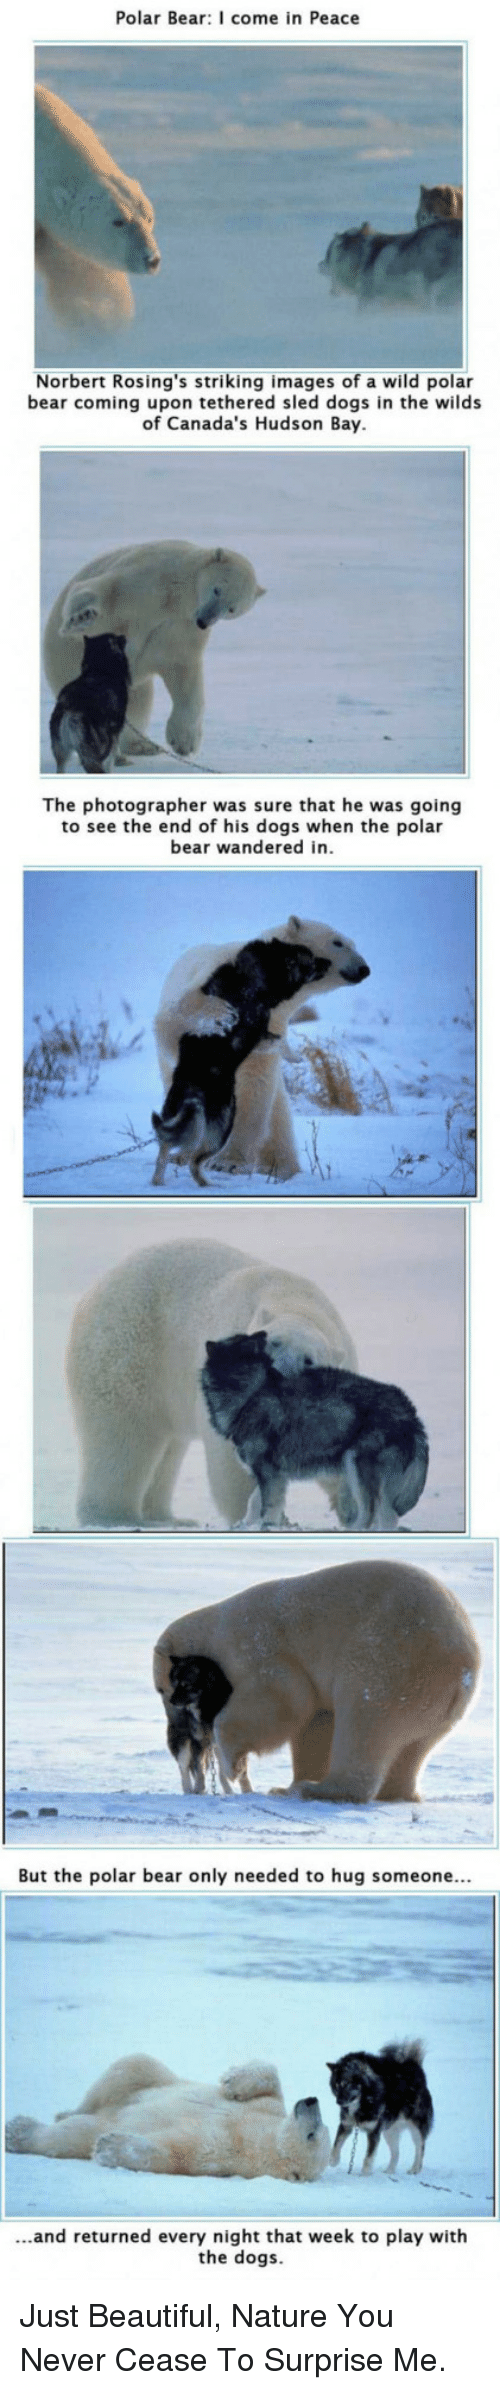 Beautiful, Dogs, and Bear: Polar Bear: I come in Peace  Norbert Rosing's striking images of a wild polar  bear coming upon tethered sled dogs in the wilds  of Canada's Hudson Bay  of Canada's Hu  The photographer was sure that he was going  to see the end of his dogs when the polar  bear wandered in  But the polar bear only needed to hug someone...  ...and returned every night that week to play with  the dogs <p>Just Beautiful, Nature You Never Cease To Surprise Me.</p>